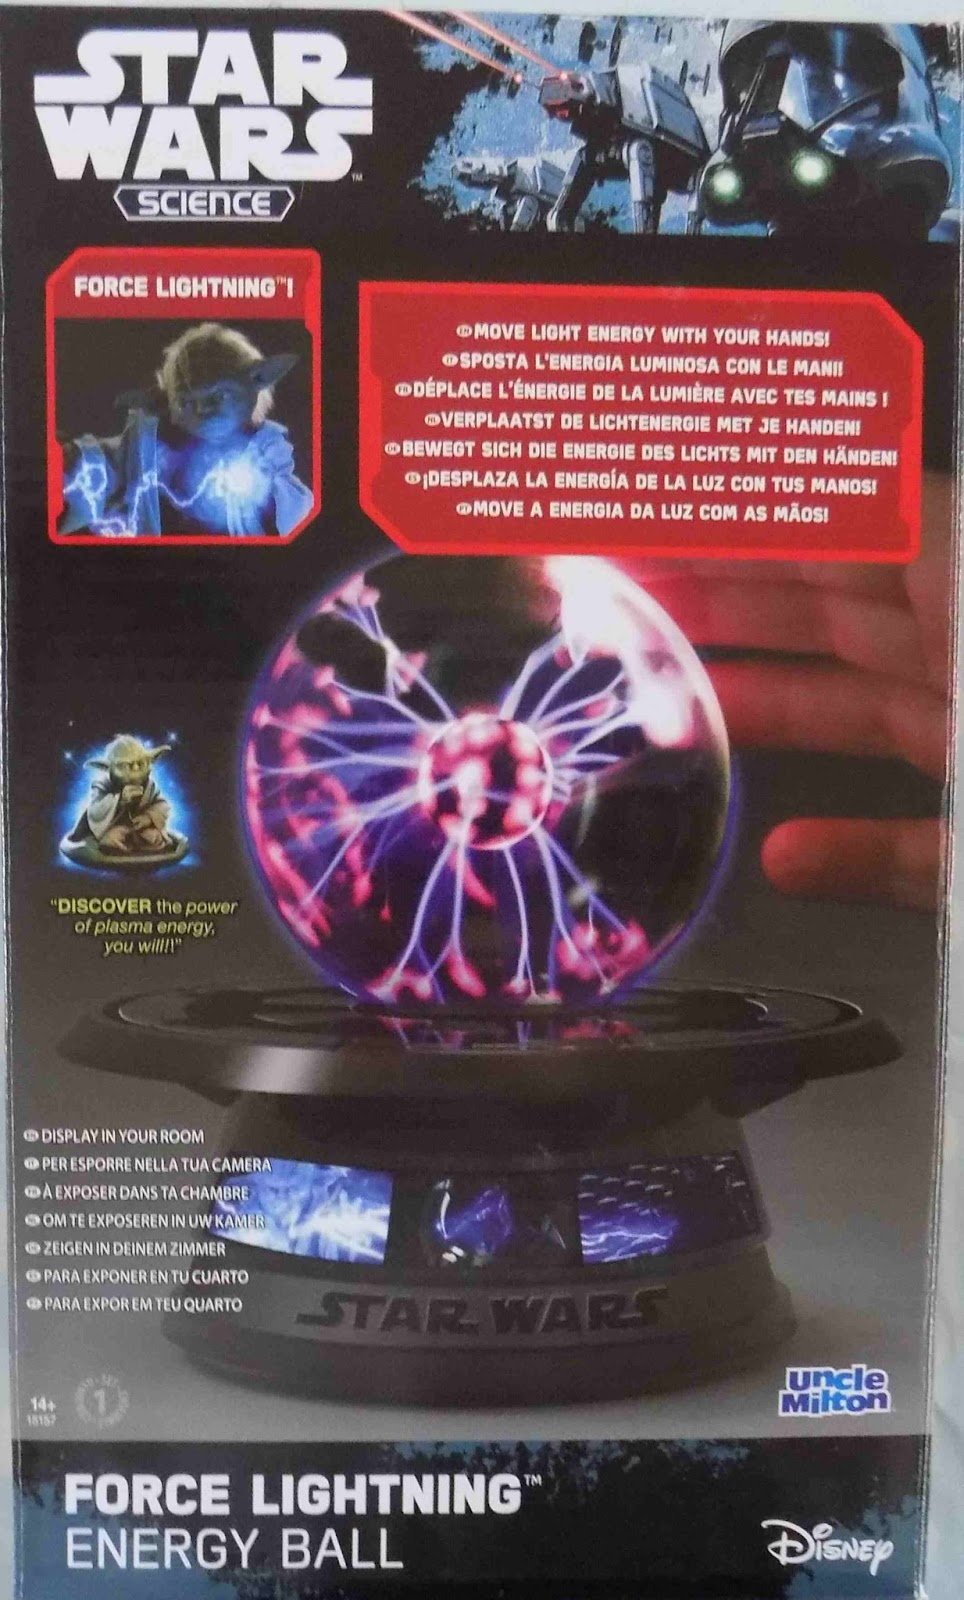 Madhouse Family Reviews: Uncle Milton Star Wars Science